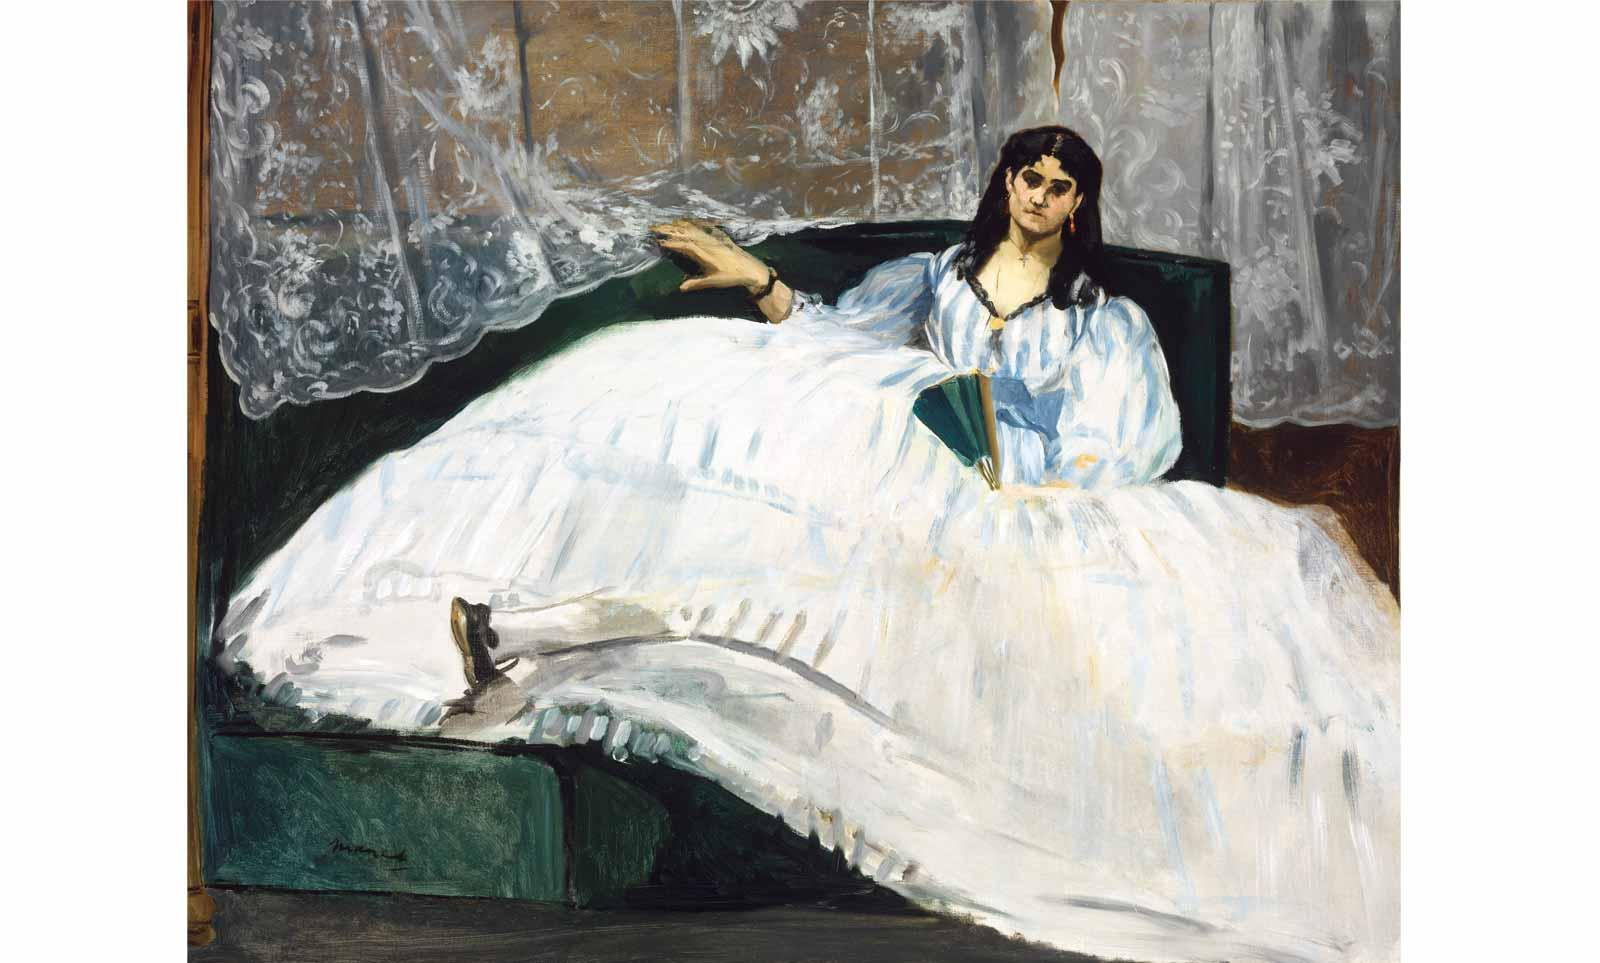 Edouard Manet (1832-1883), Jeanne Duval, 1862